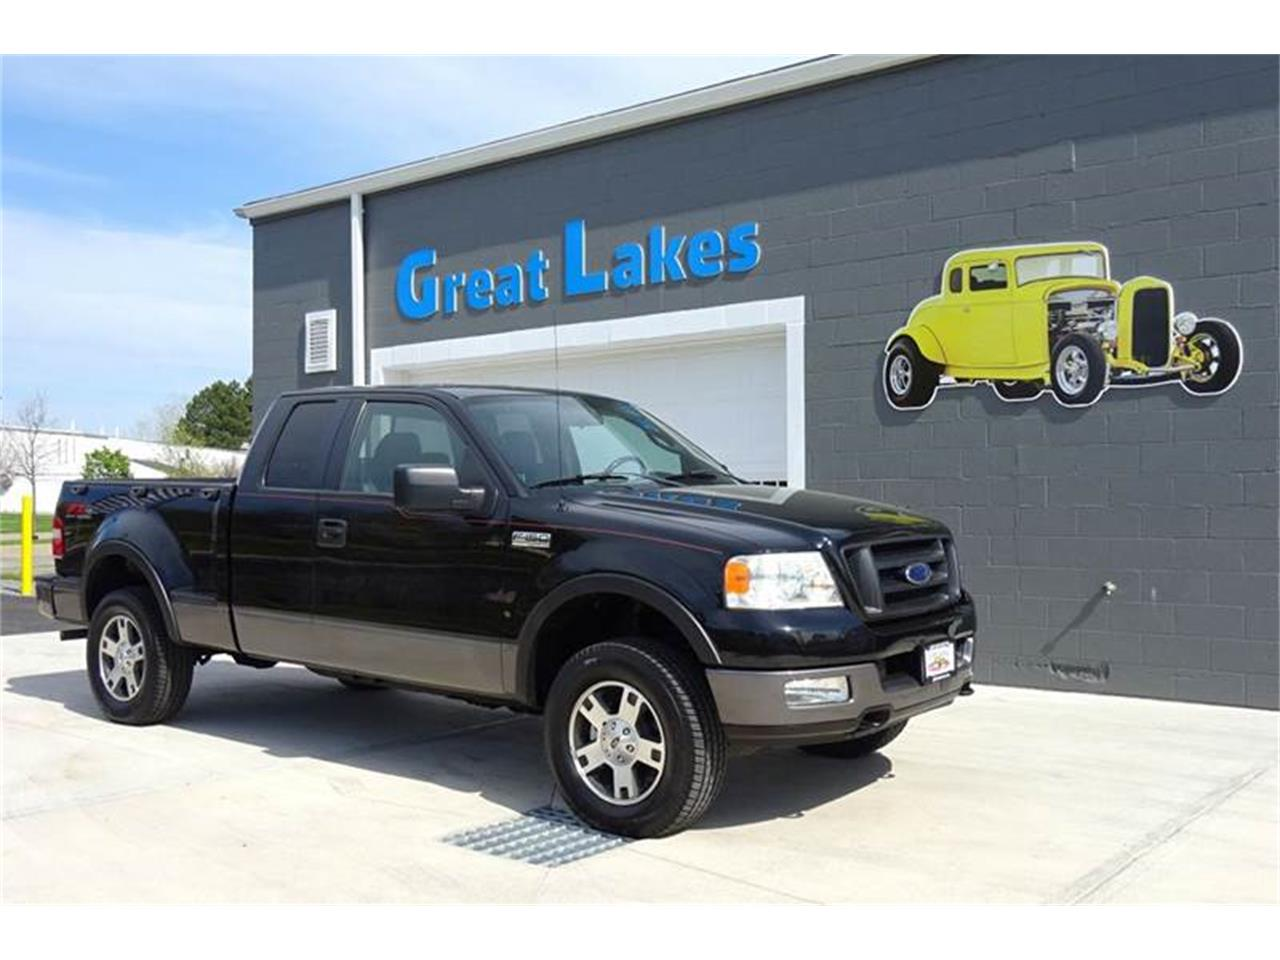 Large picture of 05 f150 kyec